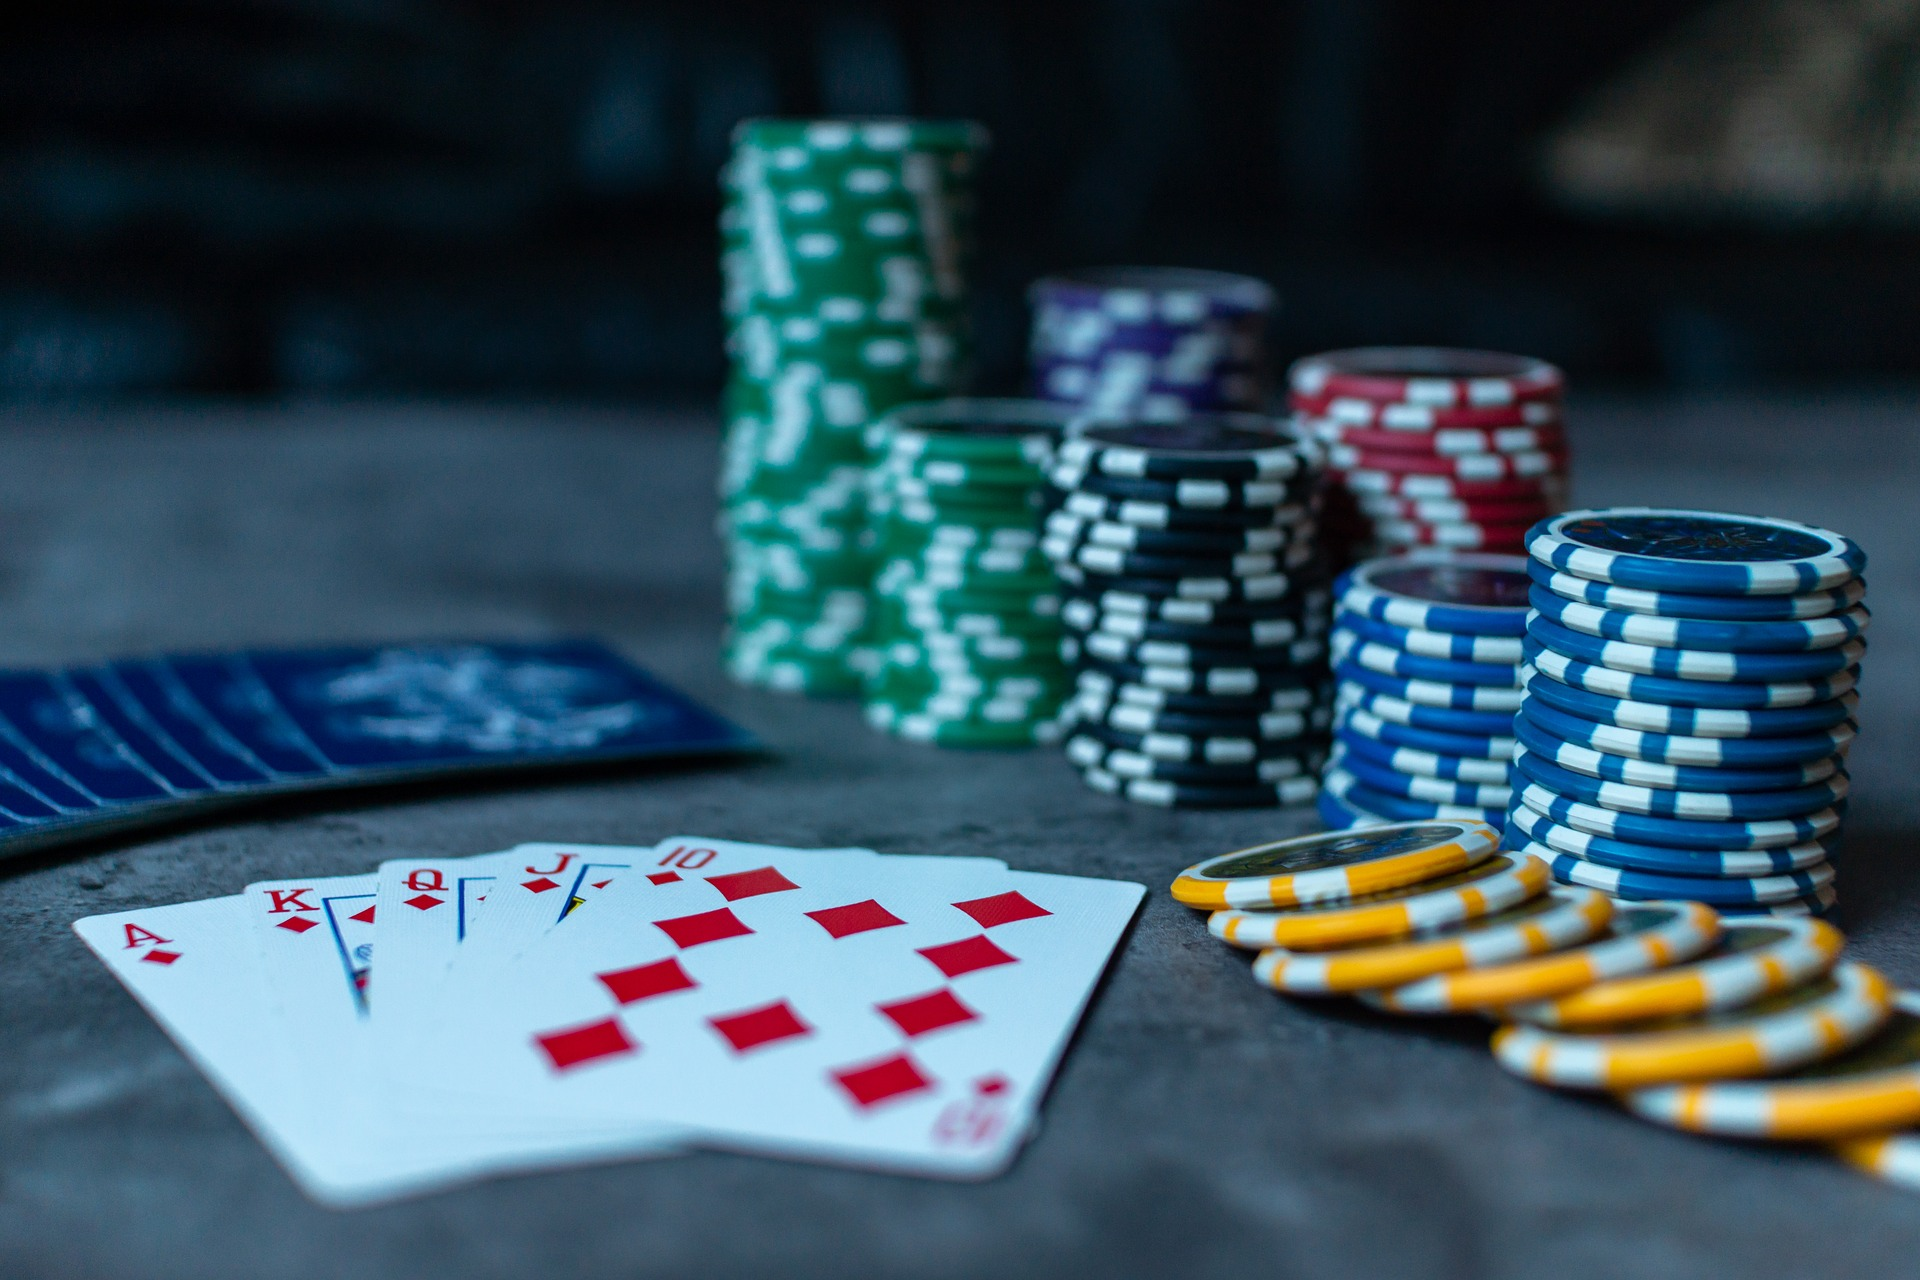 Playing poker can improve your negotiation skills, here's how. 3